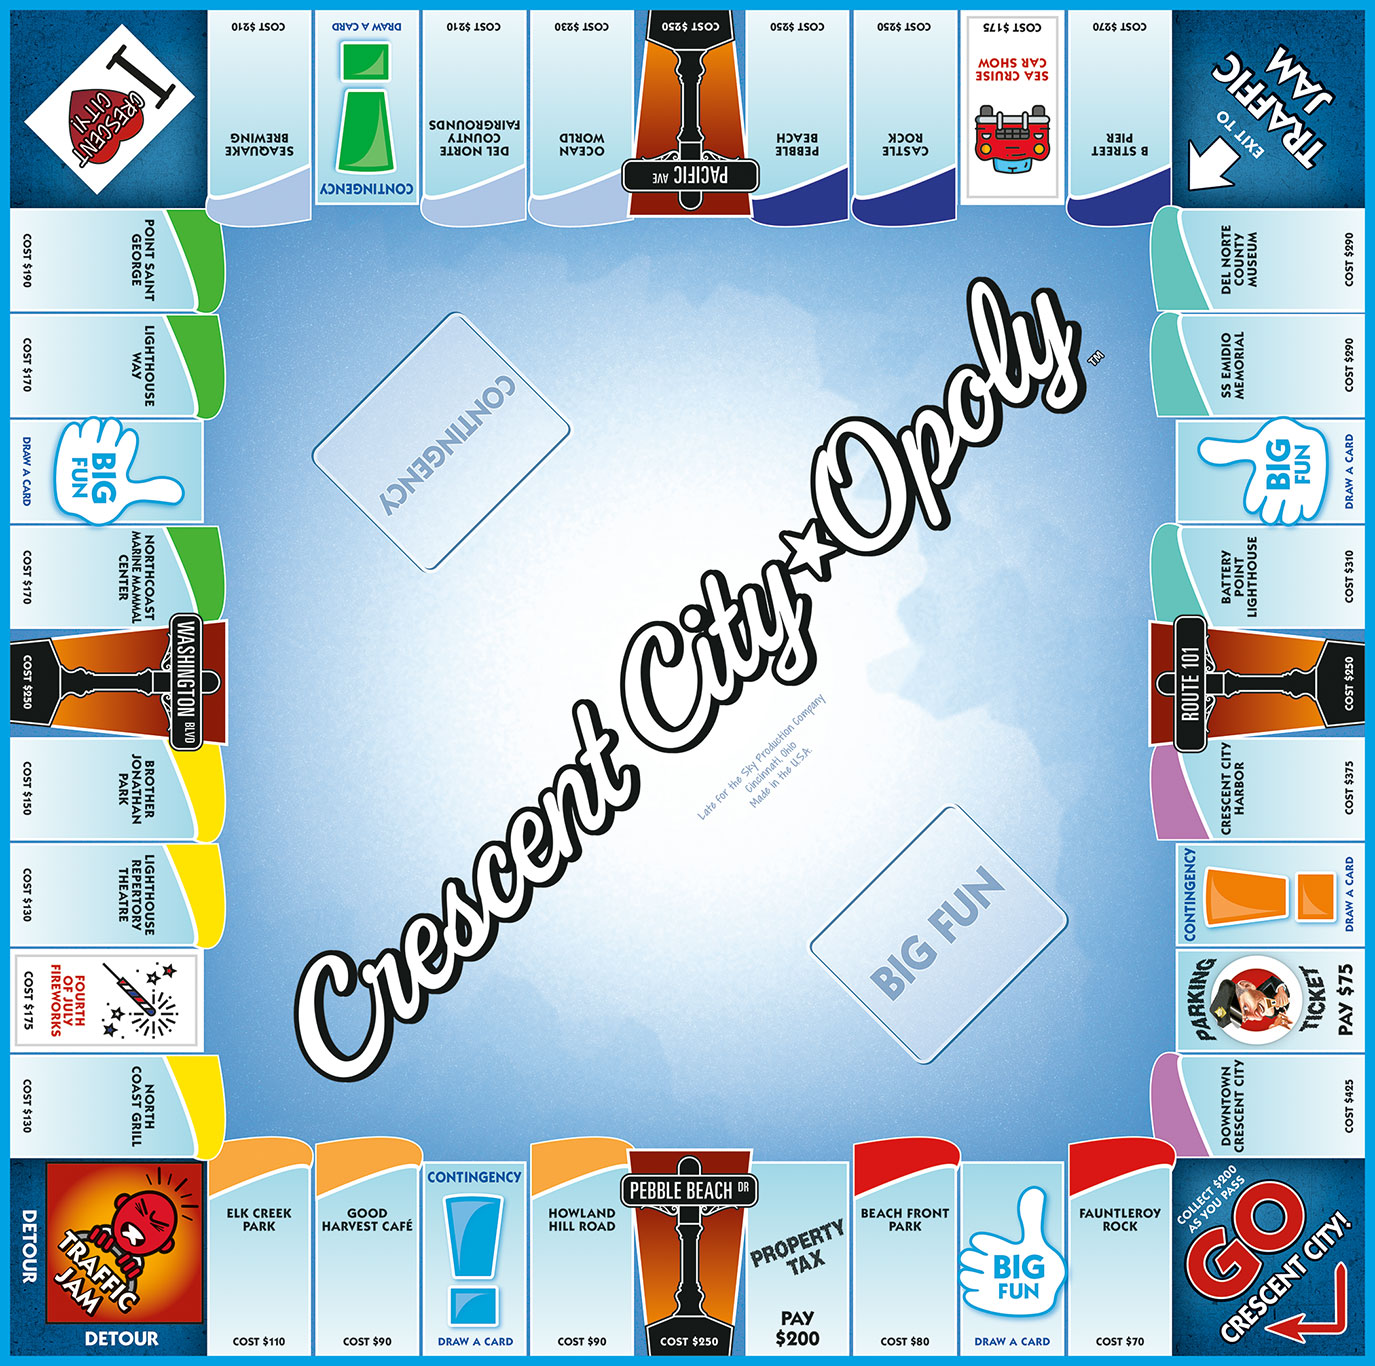 CRESCENT CITY-OPOLY Board Game